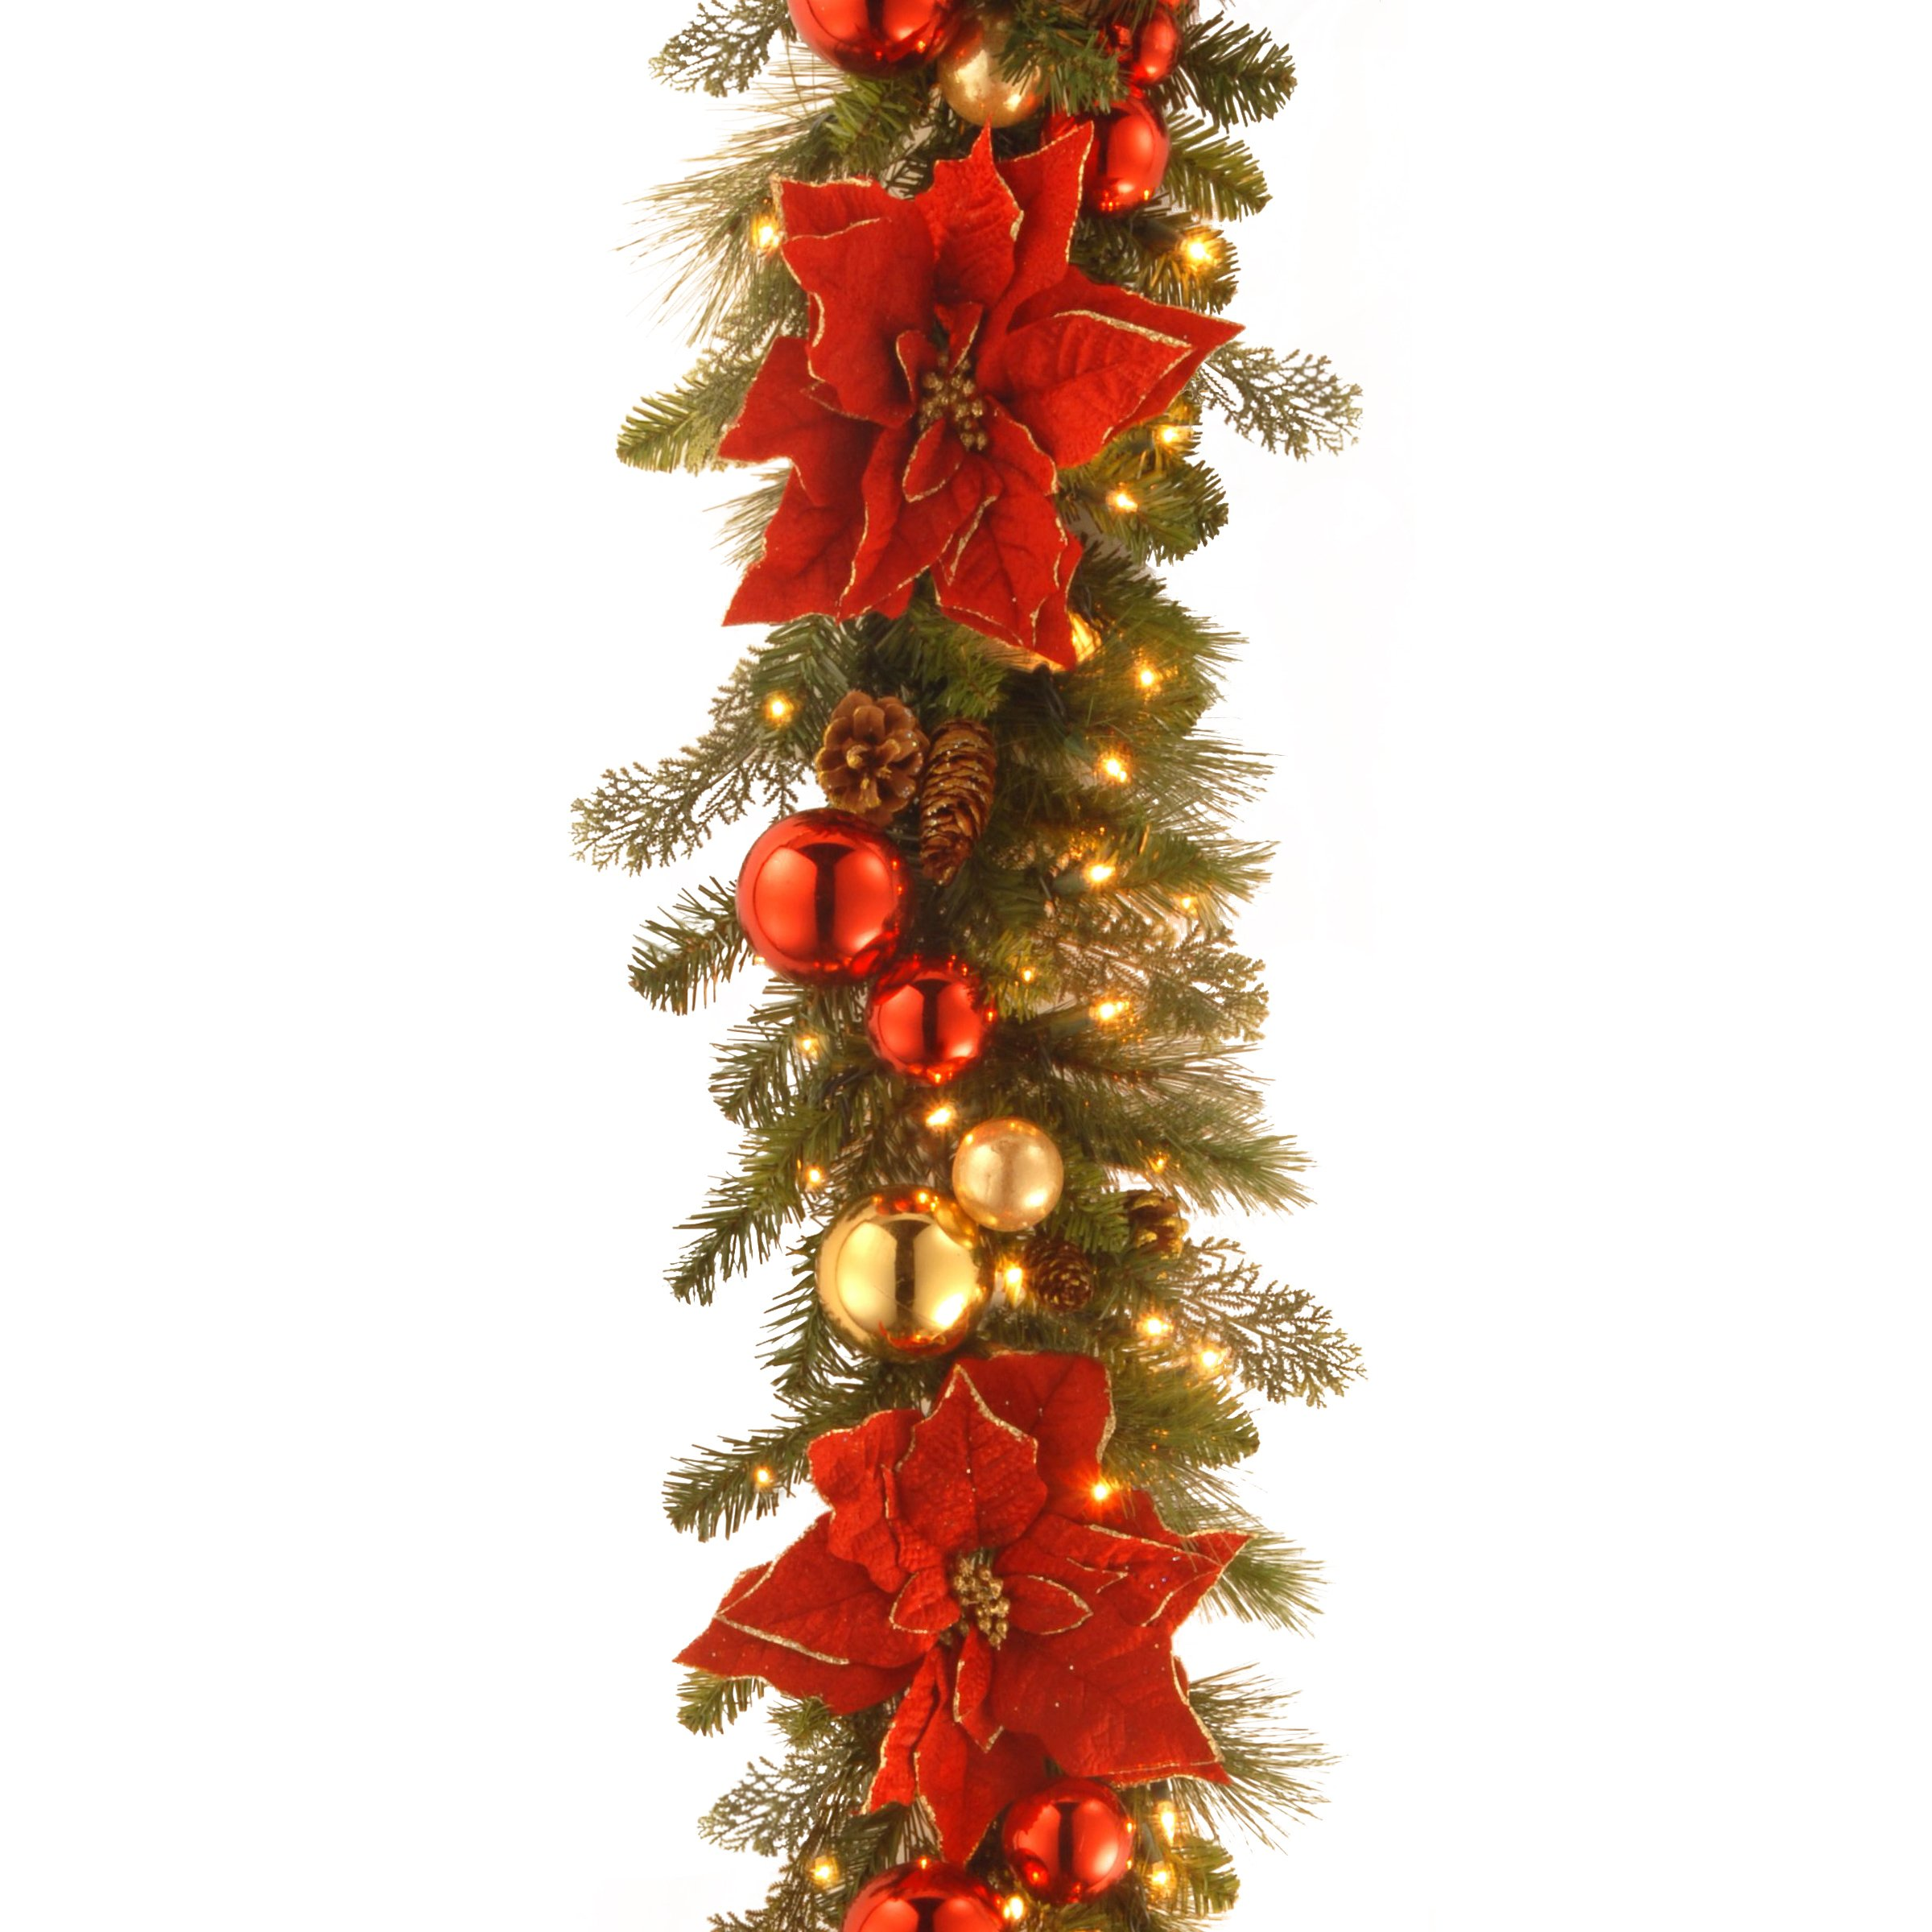 National Tree 9 Foot by 12 Inch Decorative Collection Home for the Holidays Garland with Ball Ornaments, Poinsettia Flowers, Cones and 100 Clear Lights (DC13-110L-9B-1) by National Tree Company (Image #1)